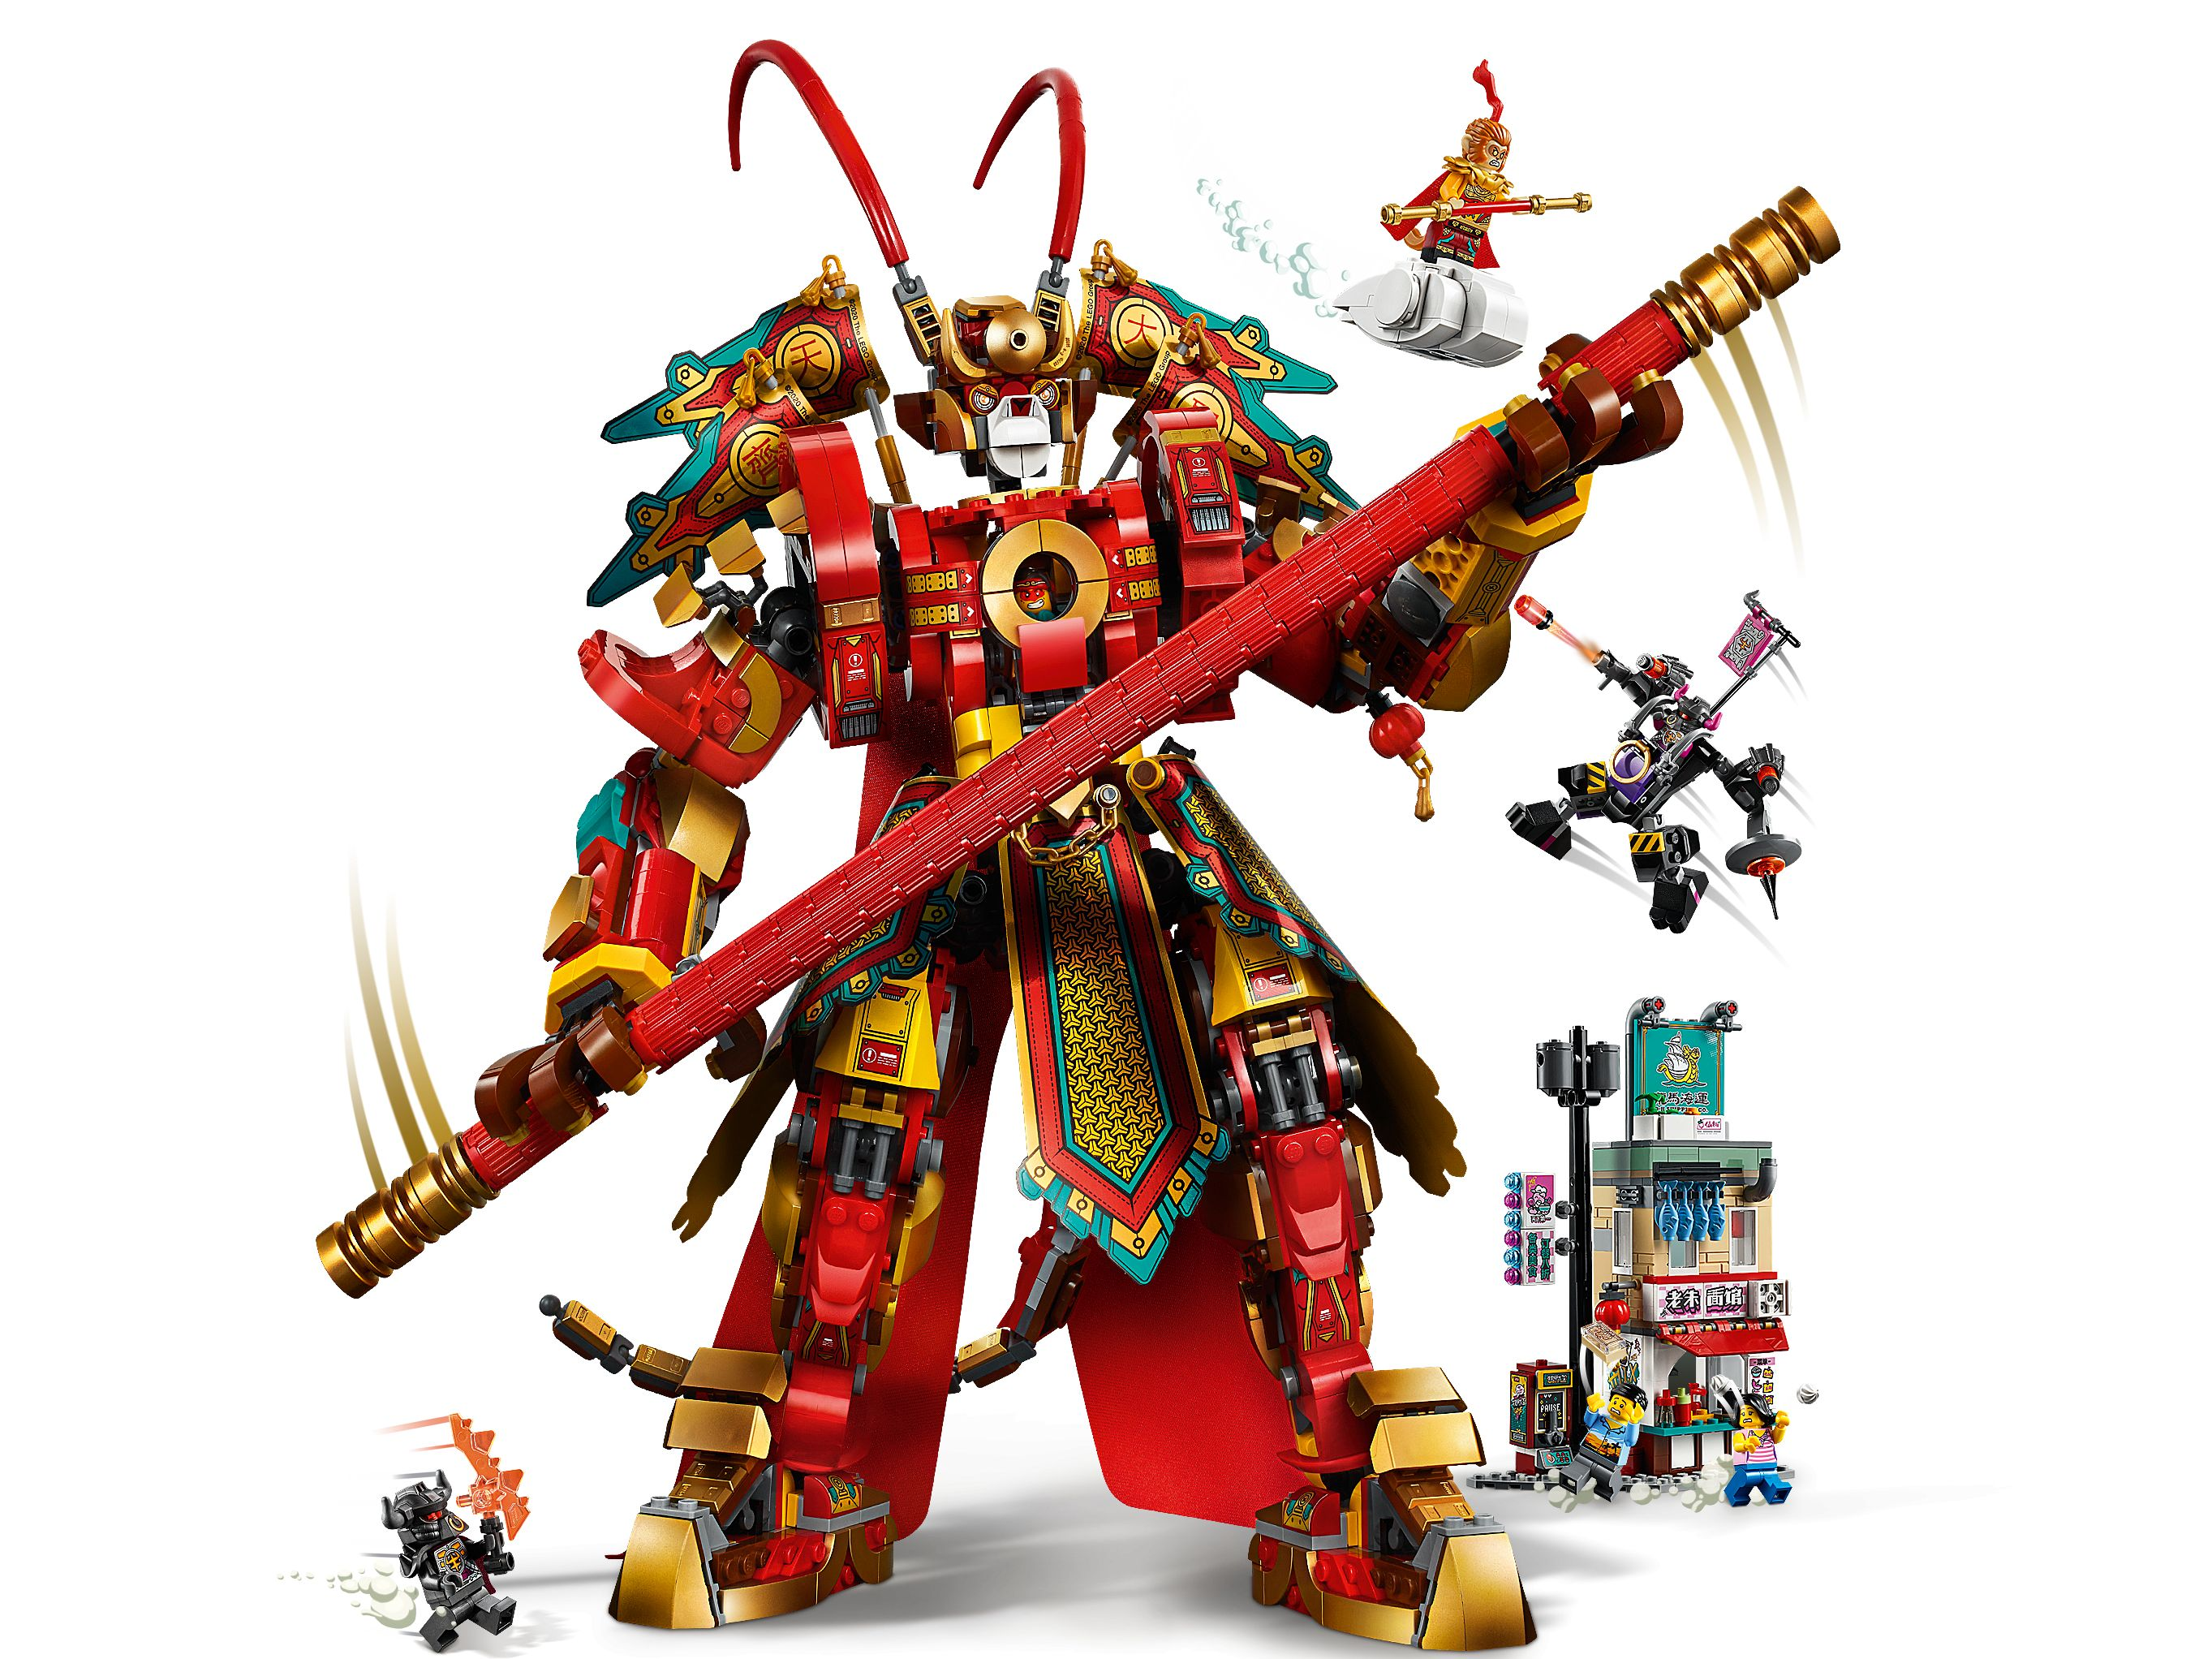 LEGO Monkie Kid 80012 Monkey King Mech LEGO_80012_alt3.jpg